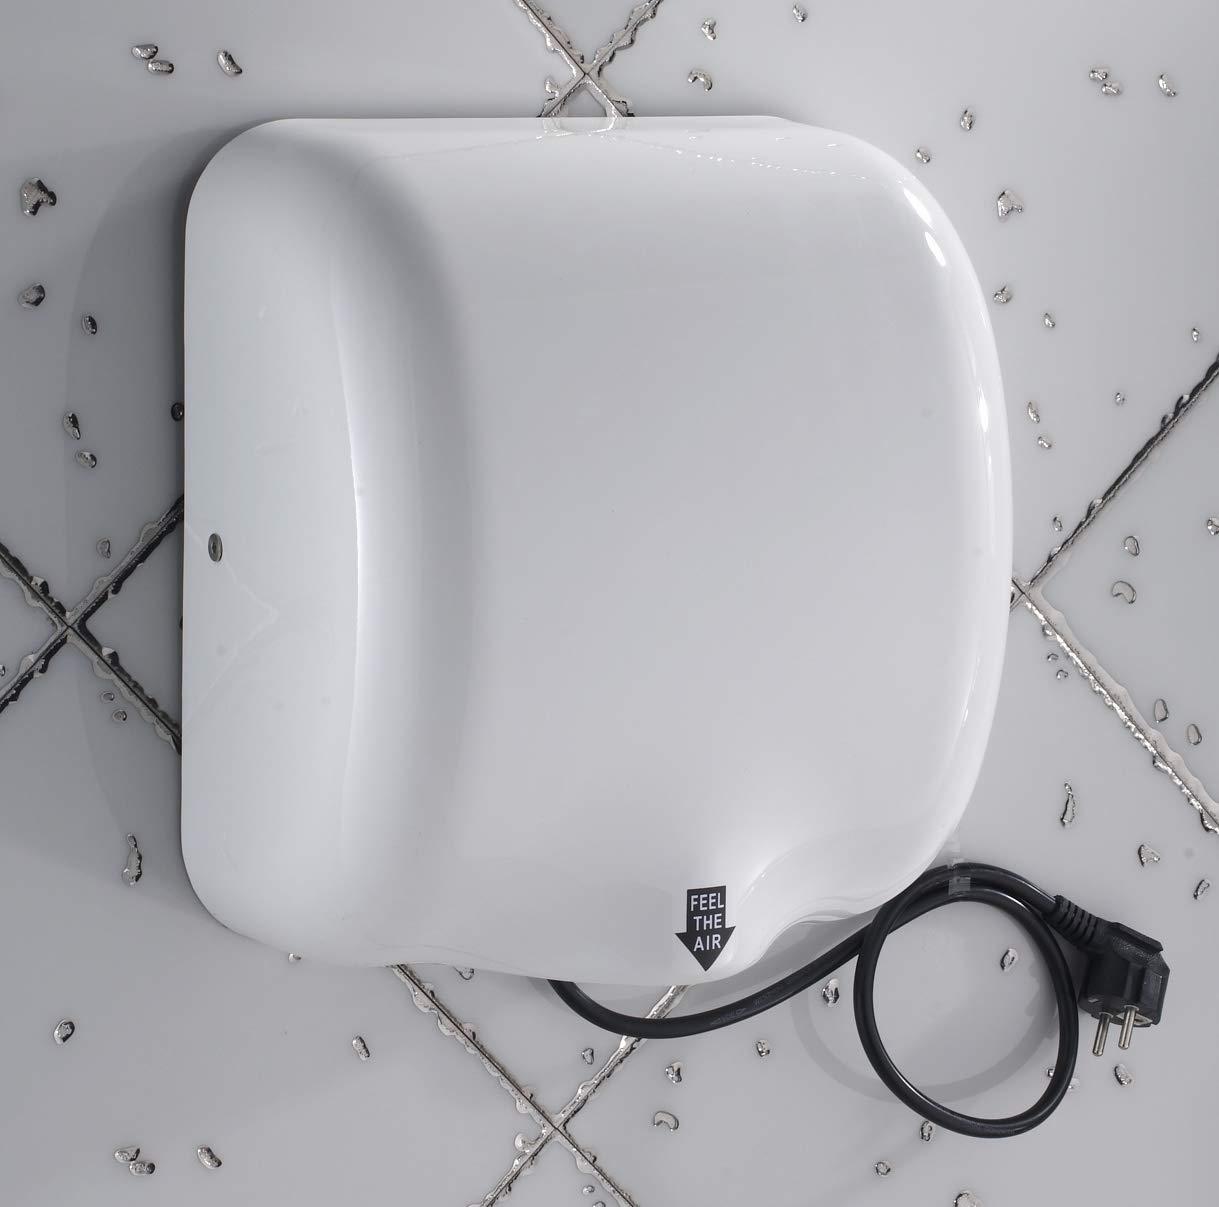 Mophorn 1800W Automatic Hand Dryer 110V Stainless Steel Commercial Hand Dryer Electric Hand Dryer for Hotel Home Bathrooms Air Hand Dryers White (White) by Mophorn (Image #1)